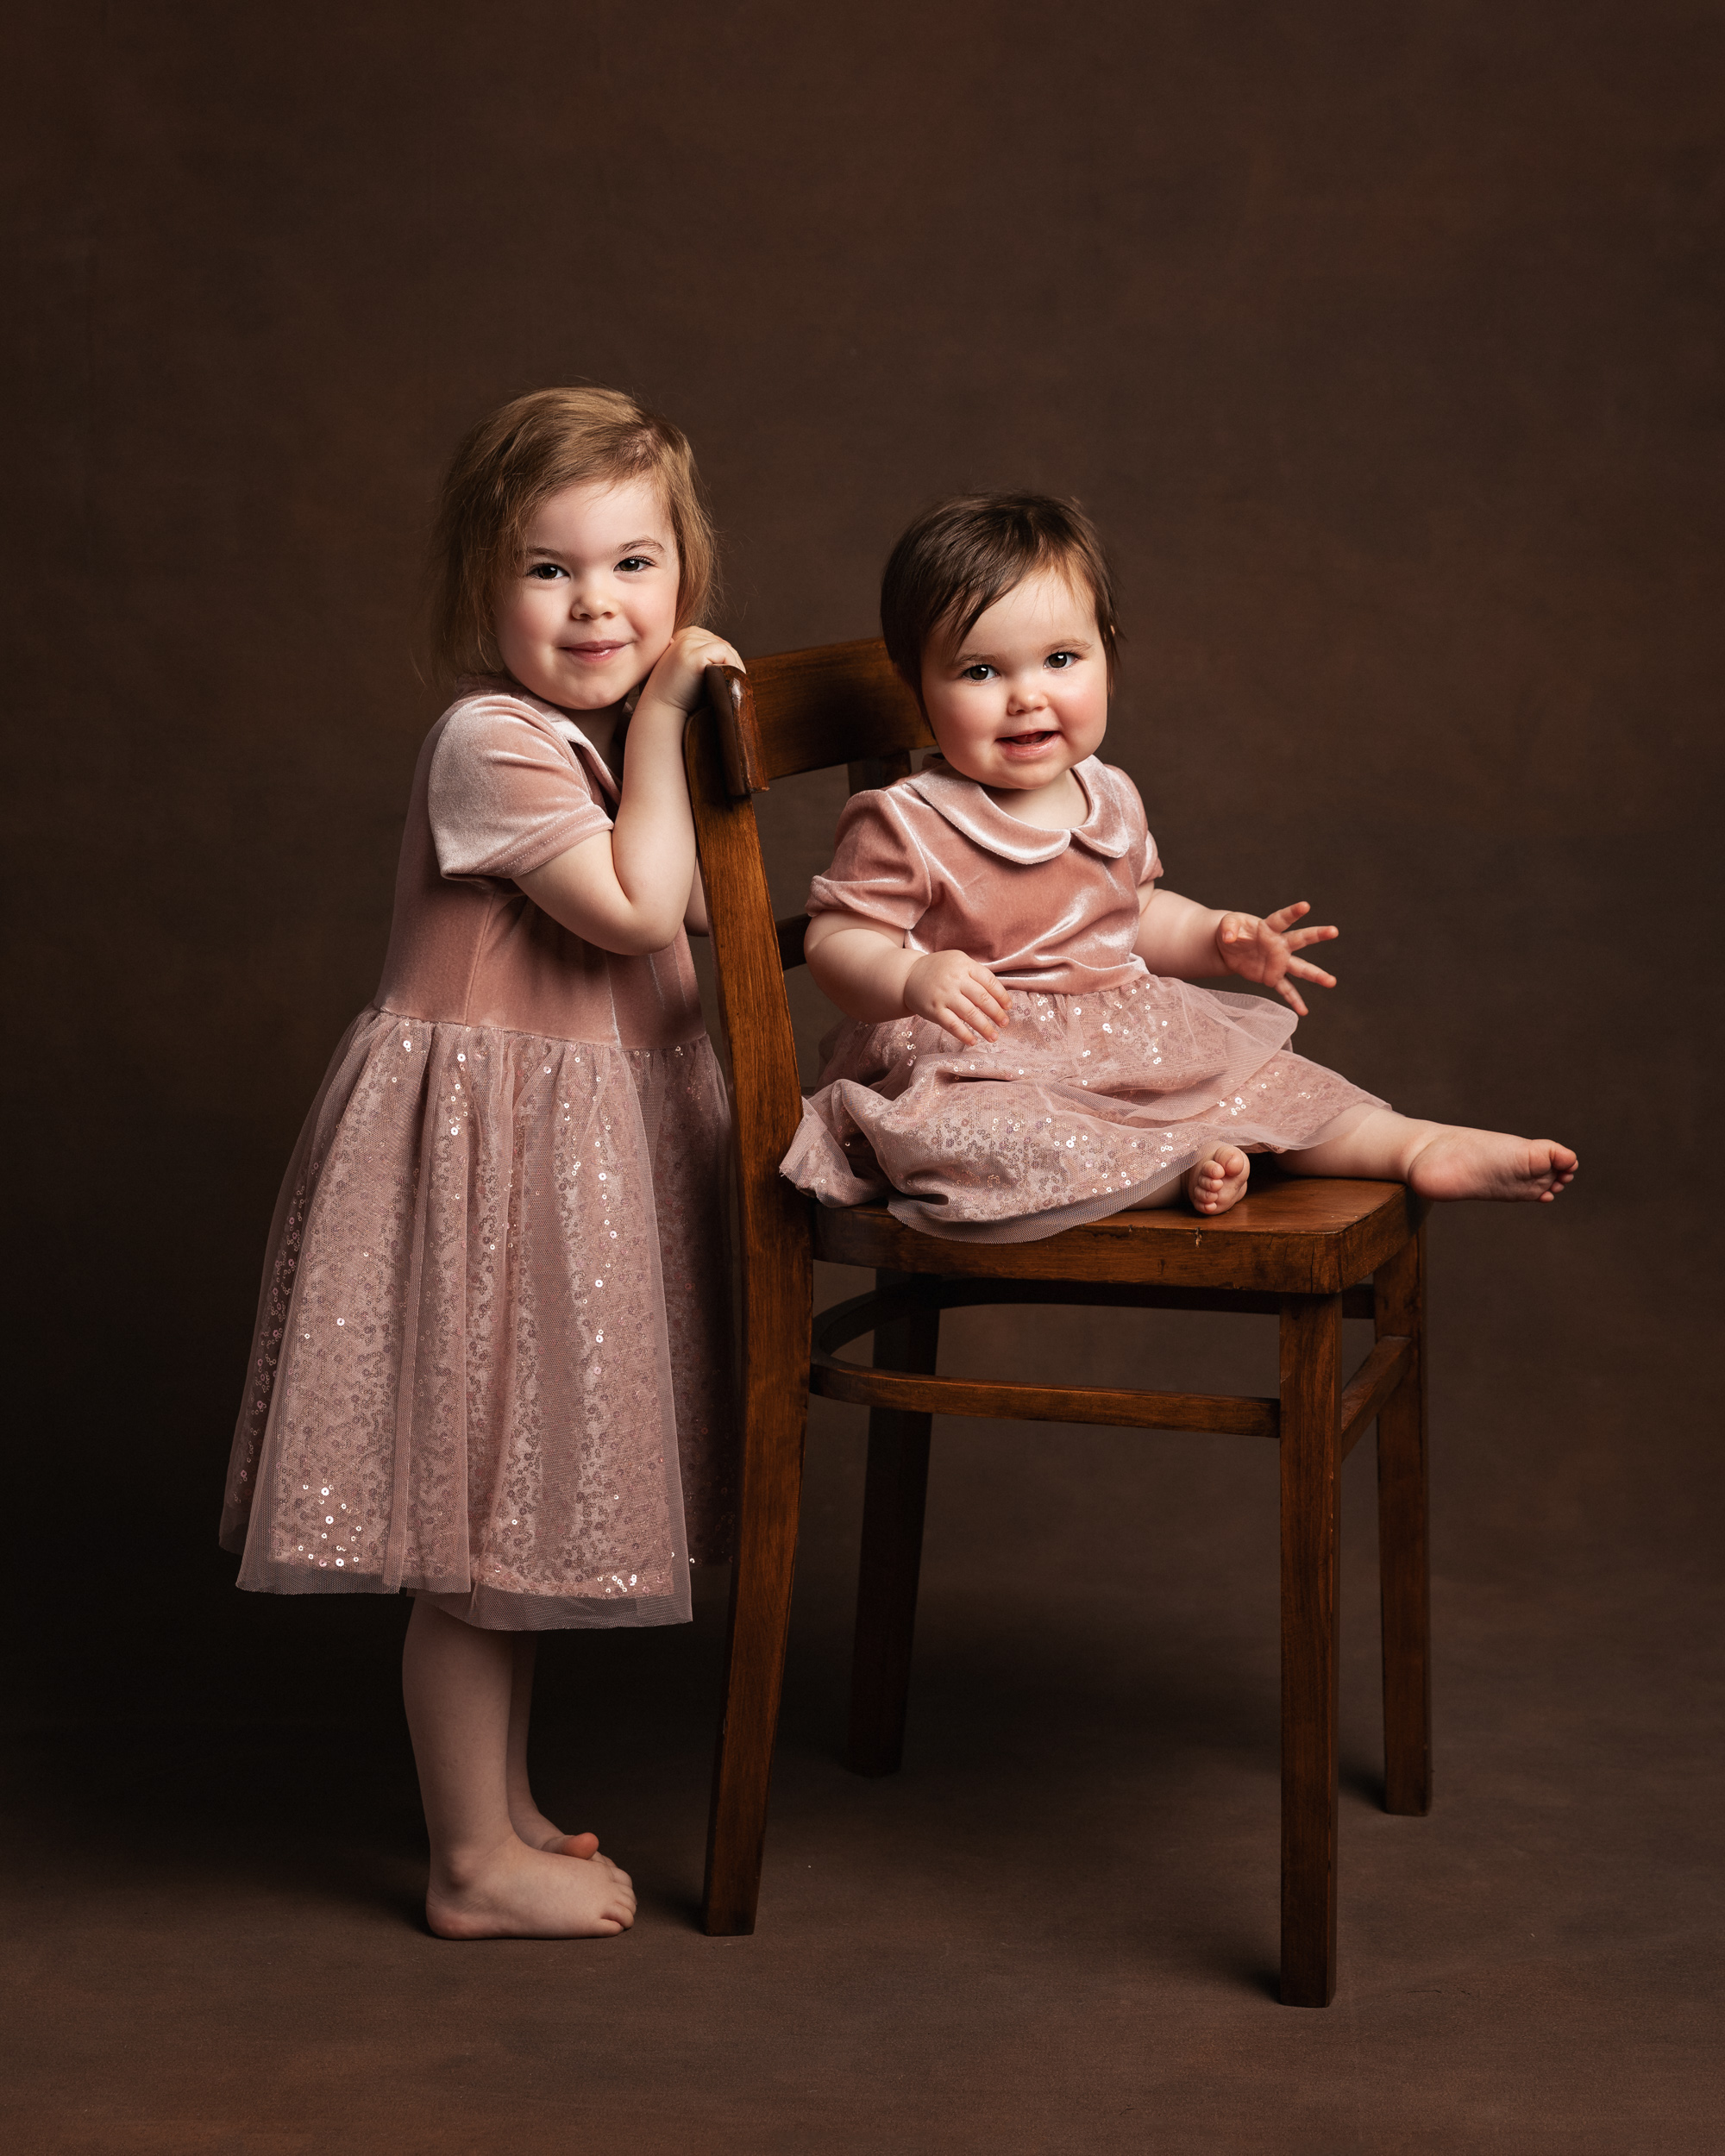 Sisters together for their photo shoot in Sandbach, Cheshire